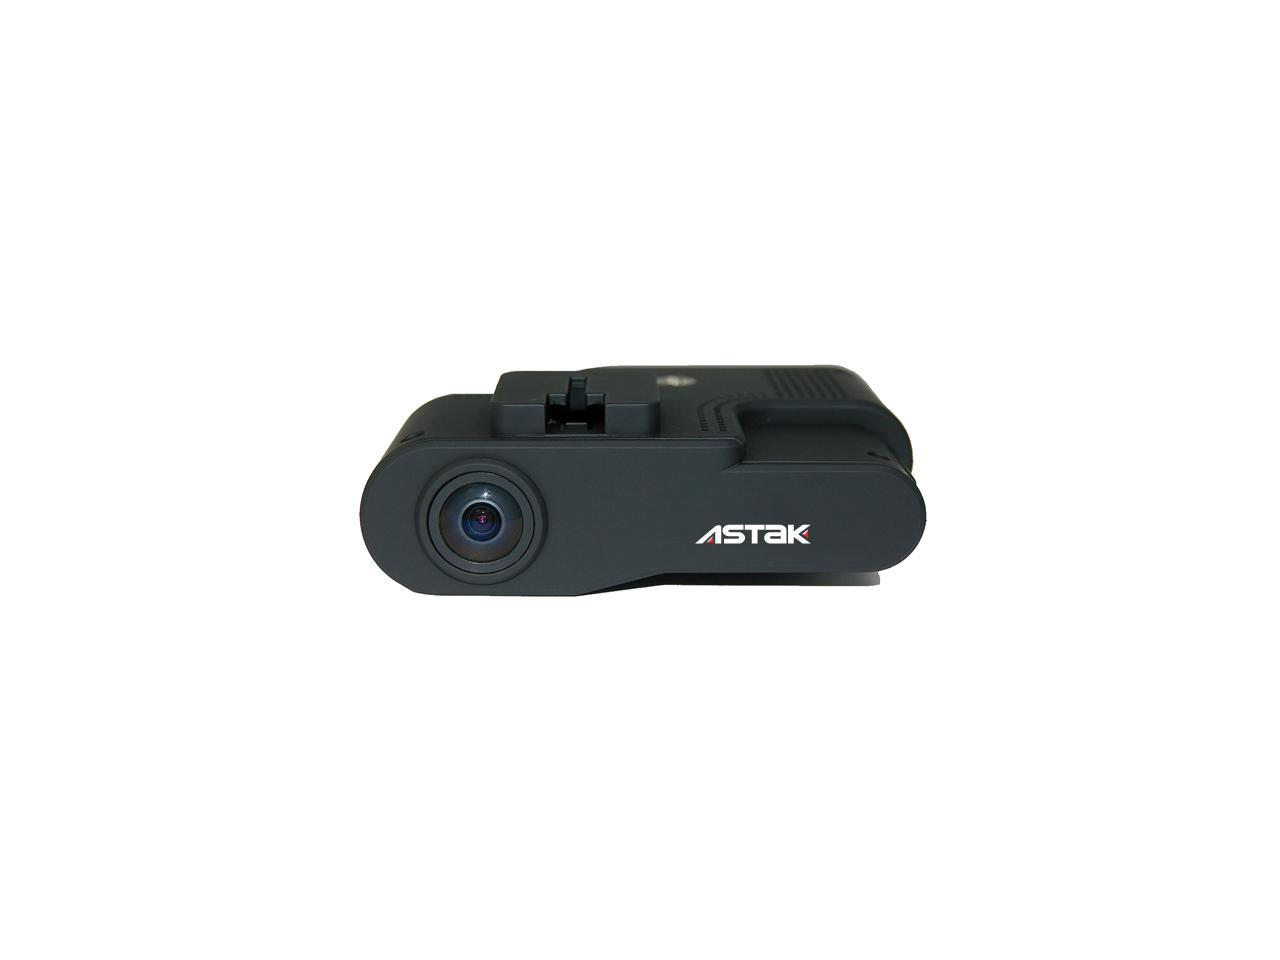 Astak Dash Pro 1080P HD Dashboard Video Recorder